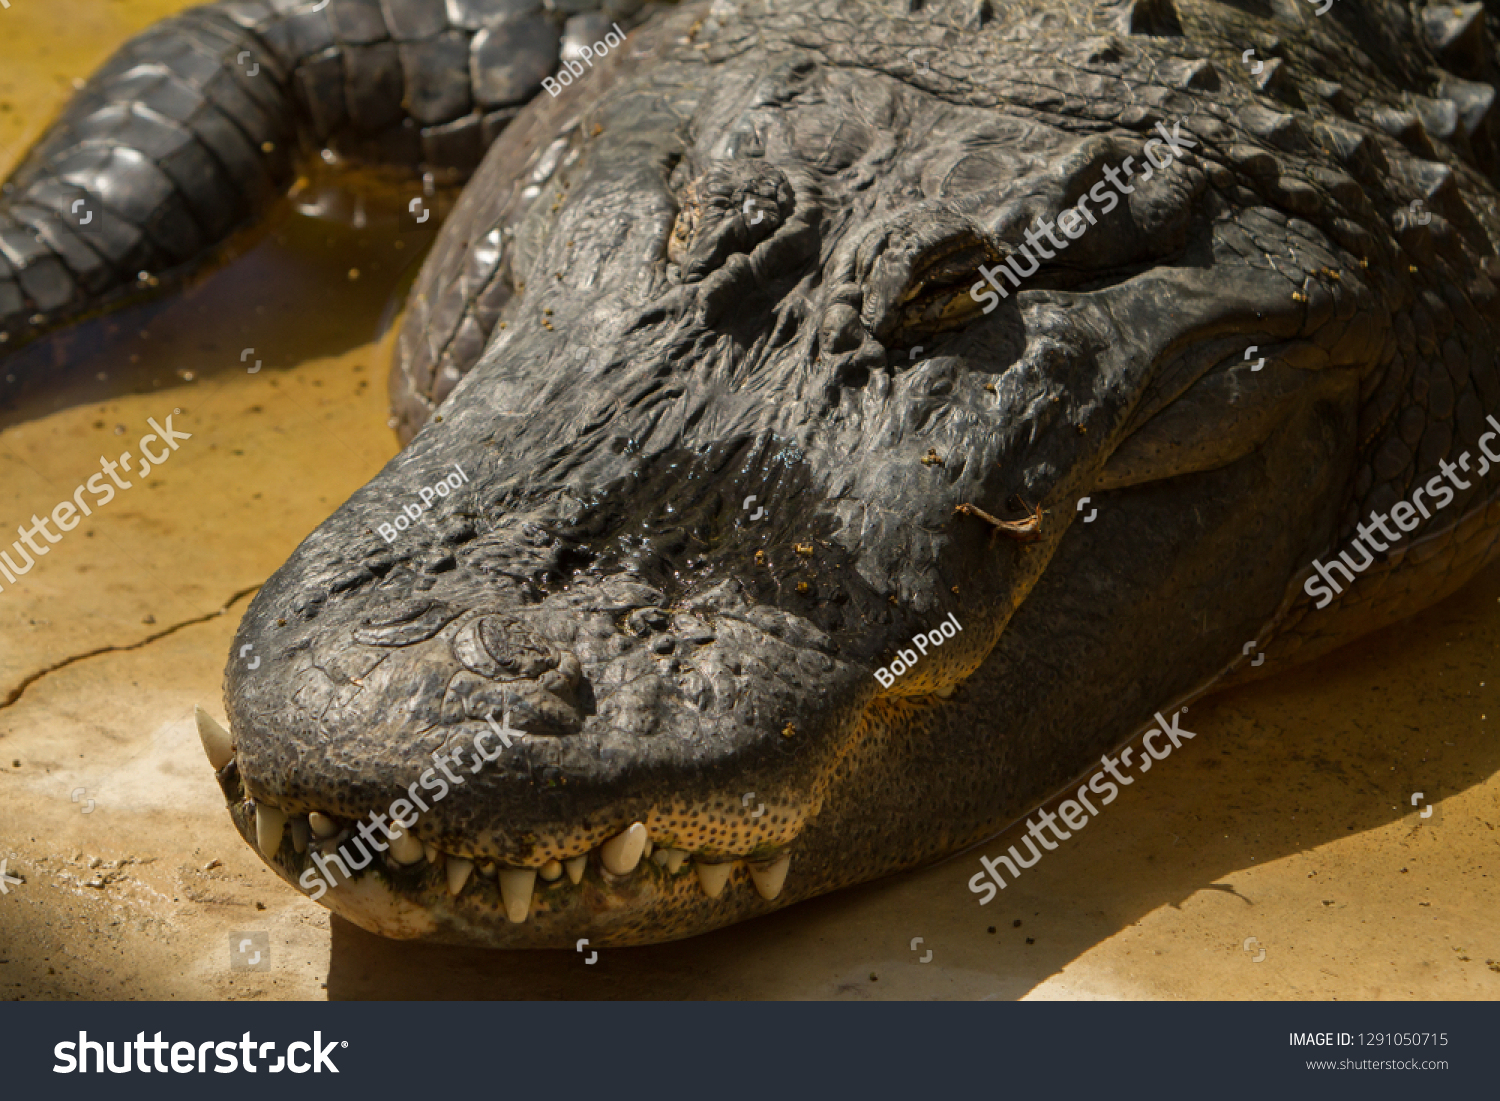 Photo De Stock De American Alligator Alligator avec Mots Gator